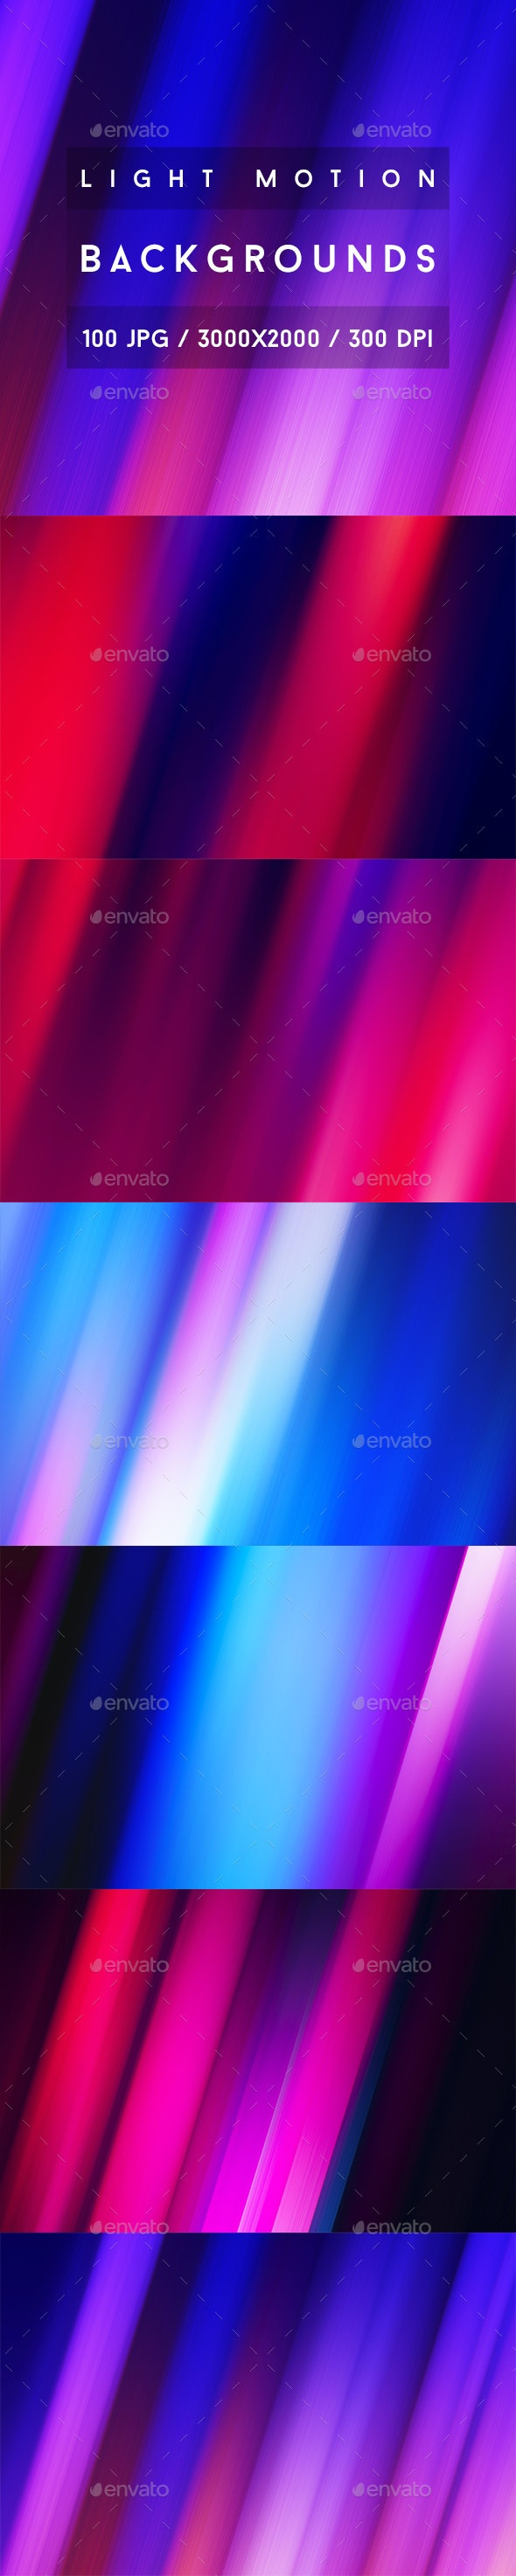 100 Light Motion Backgrounds - Abstract Backgrounds